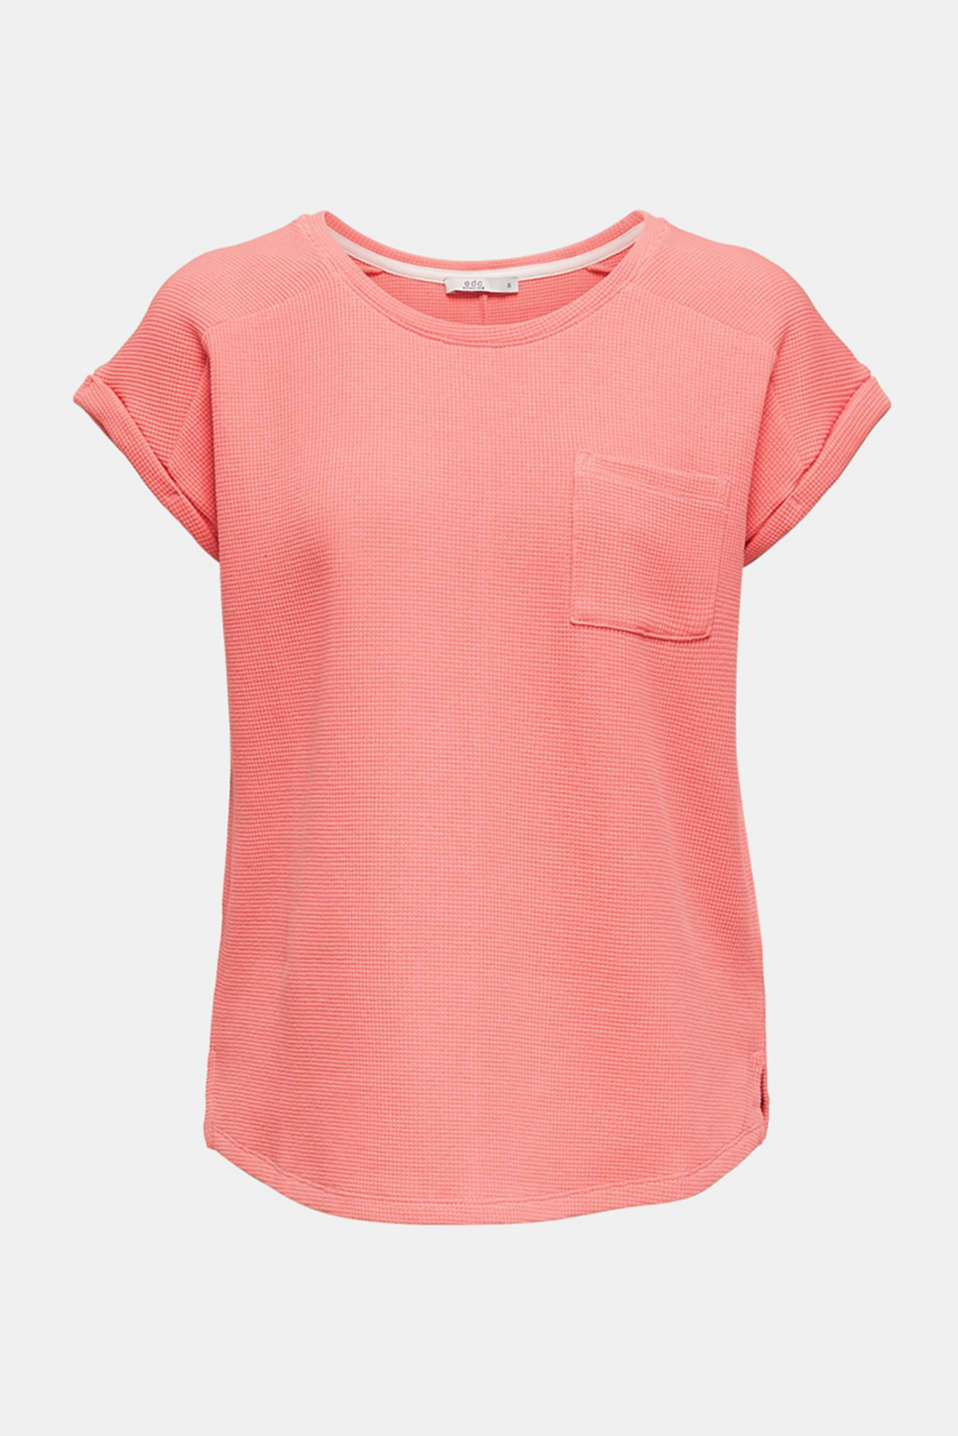 Textured stretch top with a pocket, CORAL, detail image number 6